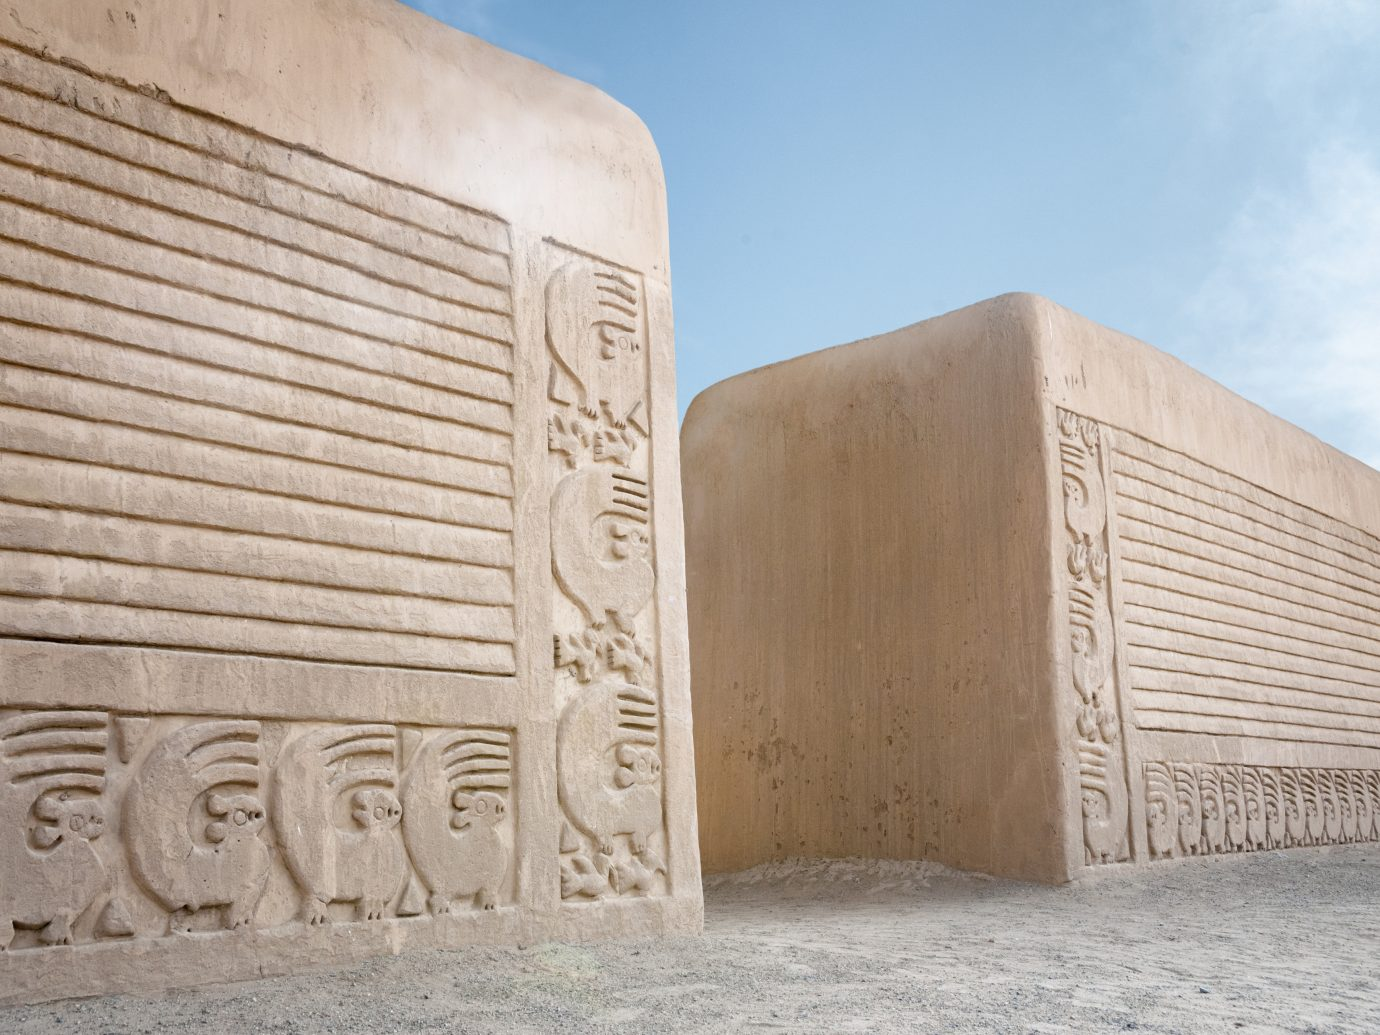 Sculpted Wall Pattern At The Ancient Chimu City Of Chan Chan In Trujillo, Peru